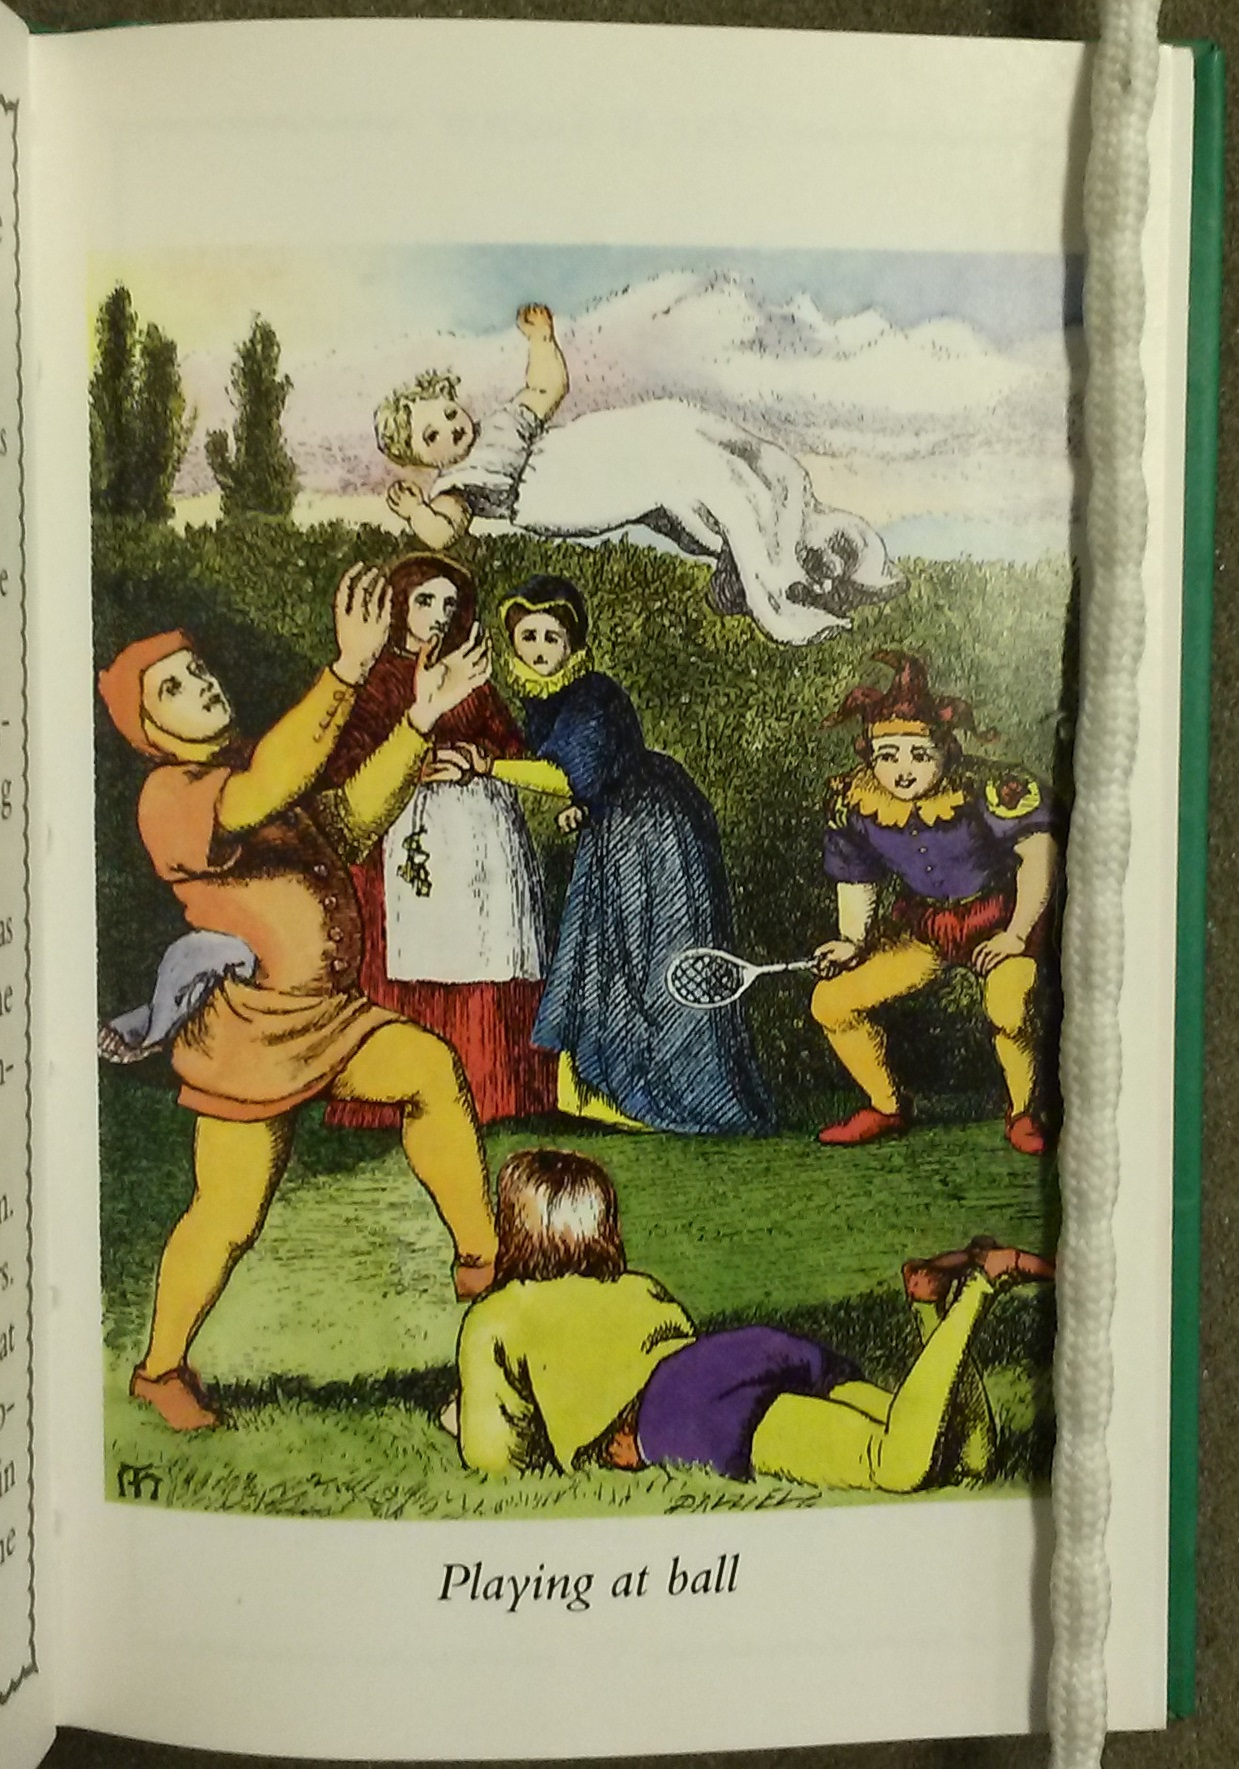 Illustration of the servants playing ball with the princess as the ball.